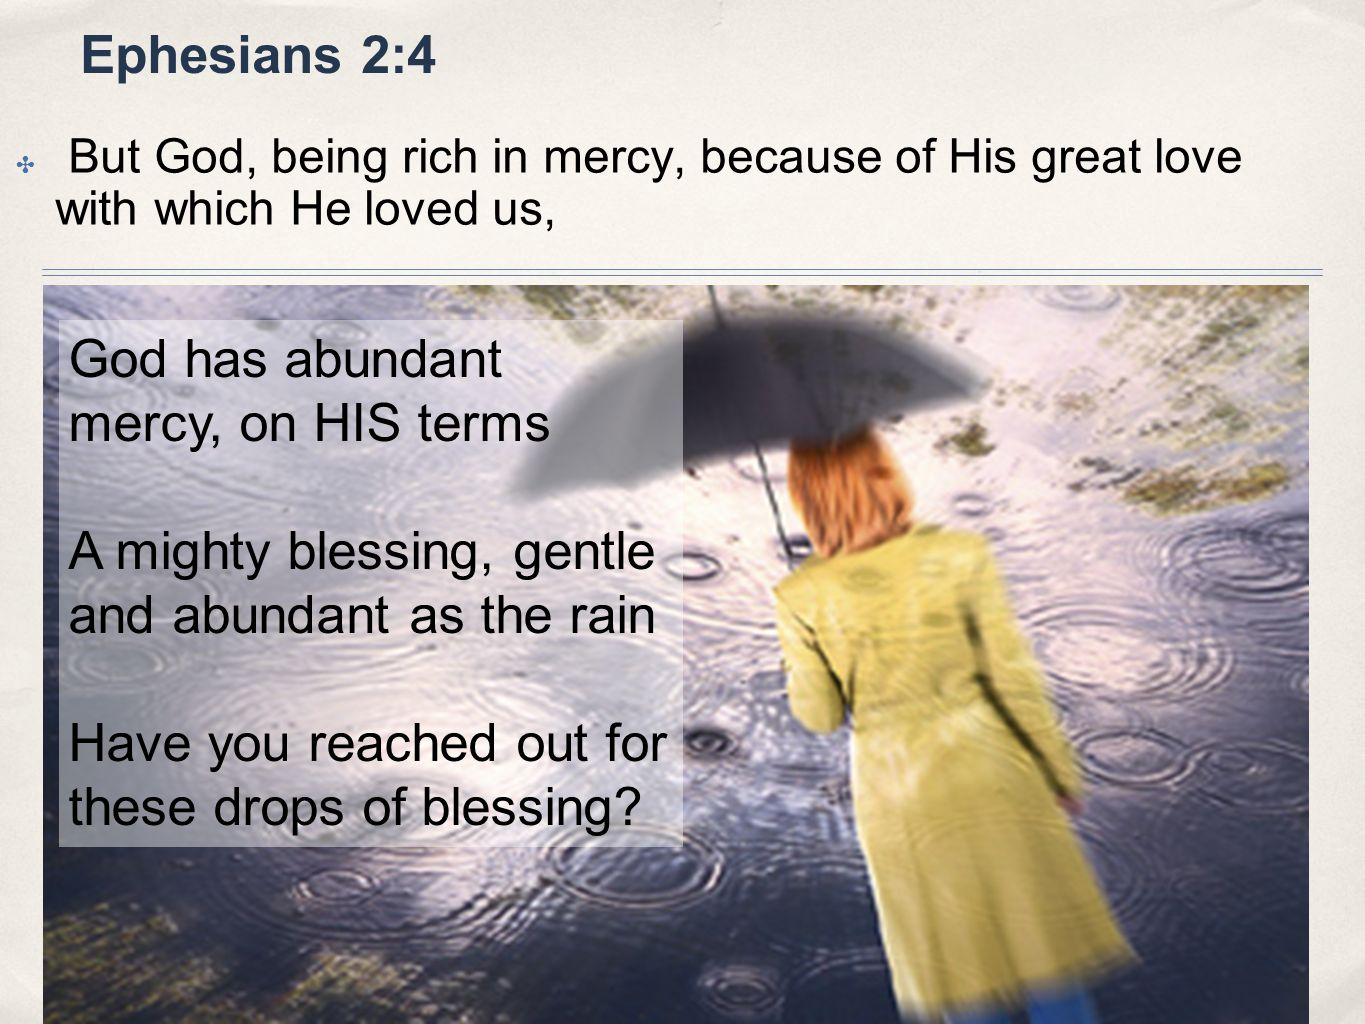 God has abundant mercy, on HIS terms